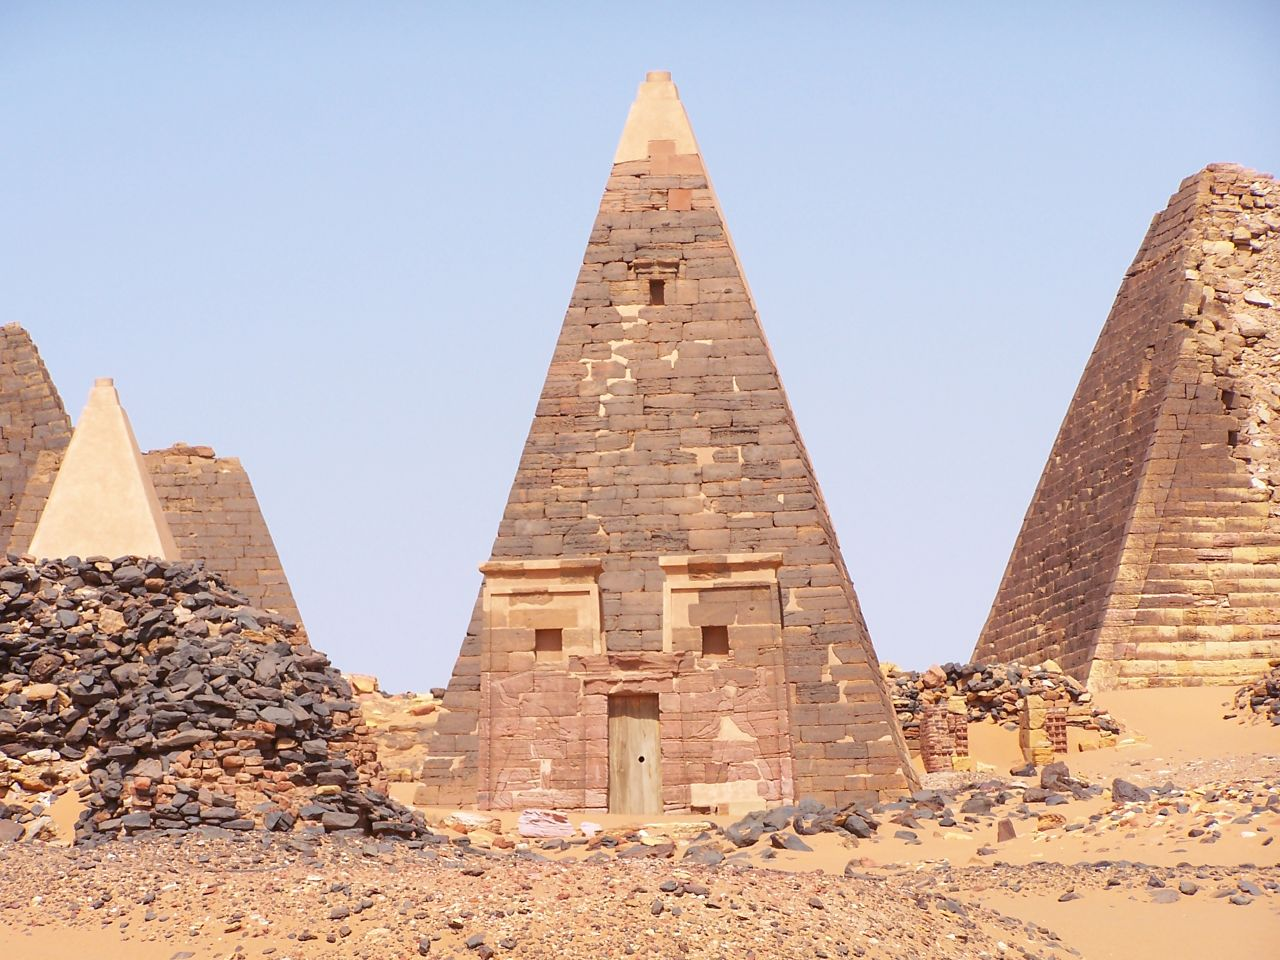 What the great pyramid originally looked like